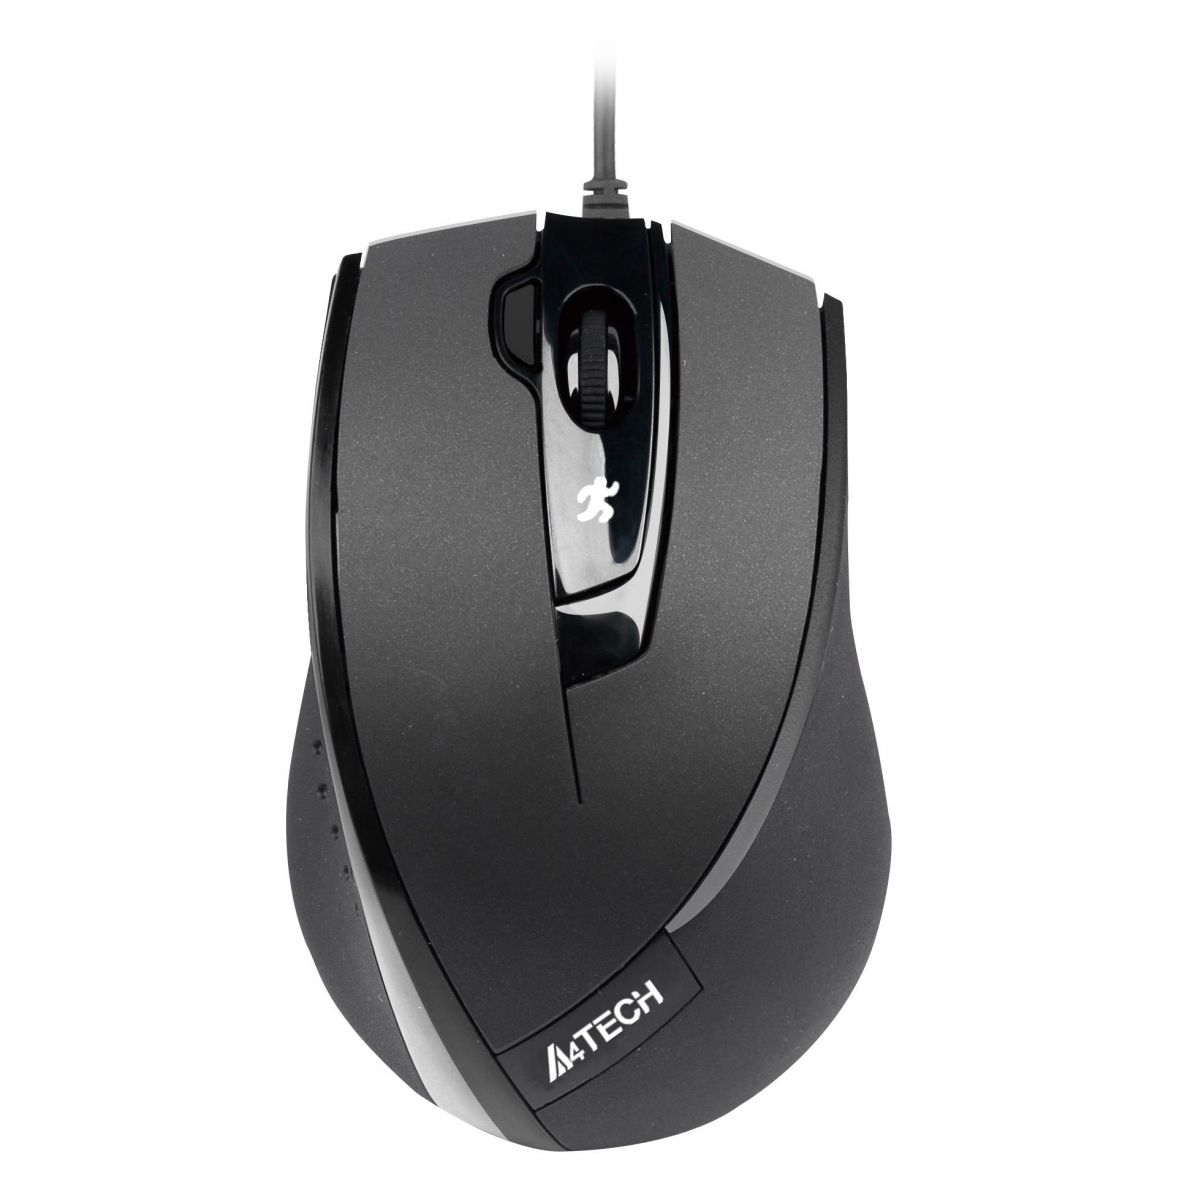 Mouse V-Track N-600X Black - A4tech